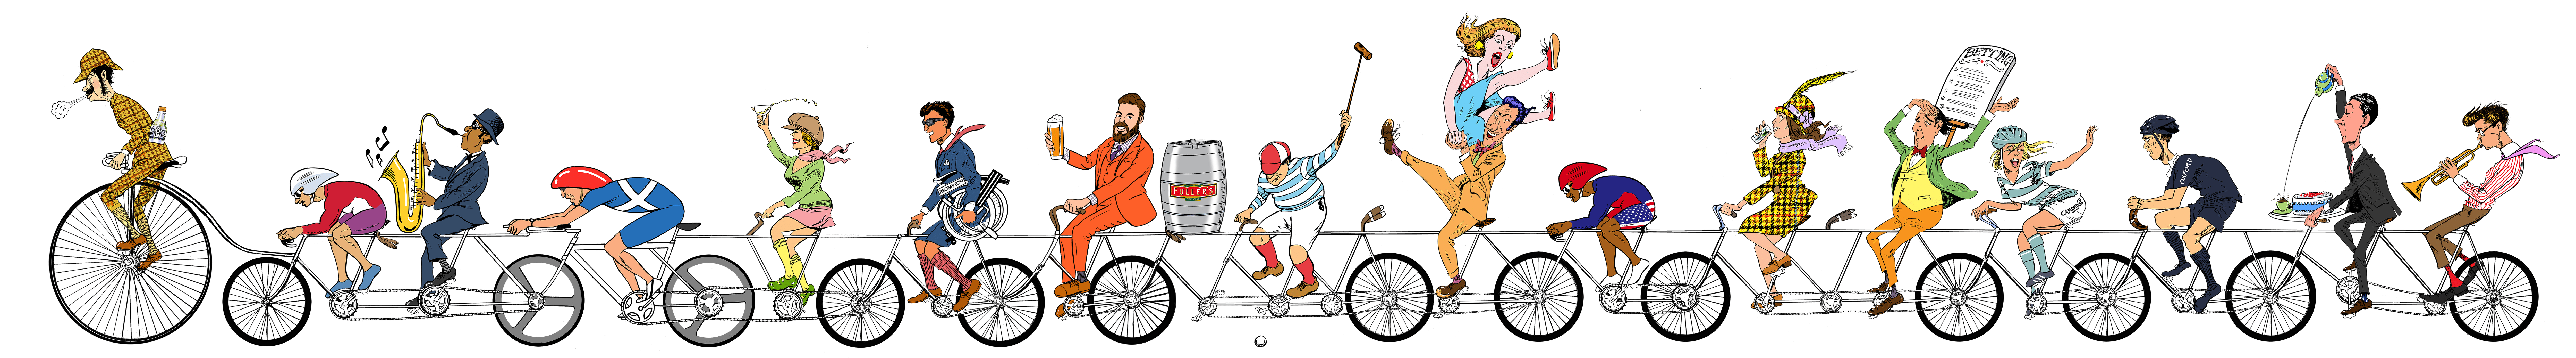 Clipart bicycle olympic cycling. World cycle revival porters